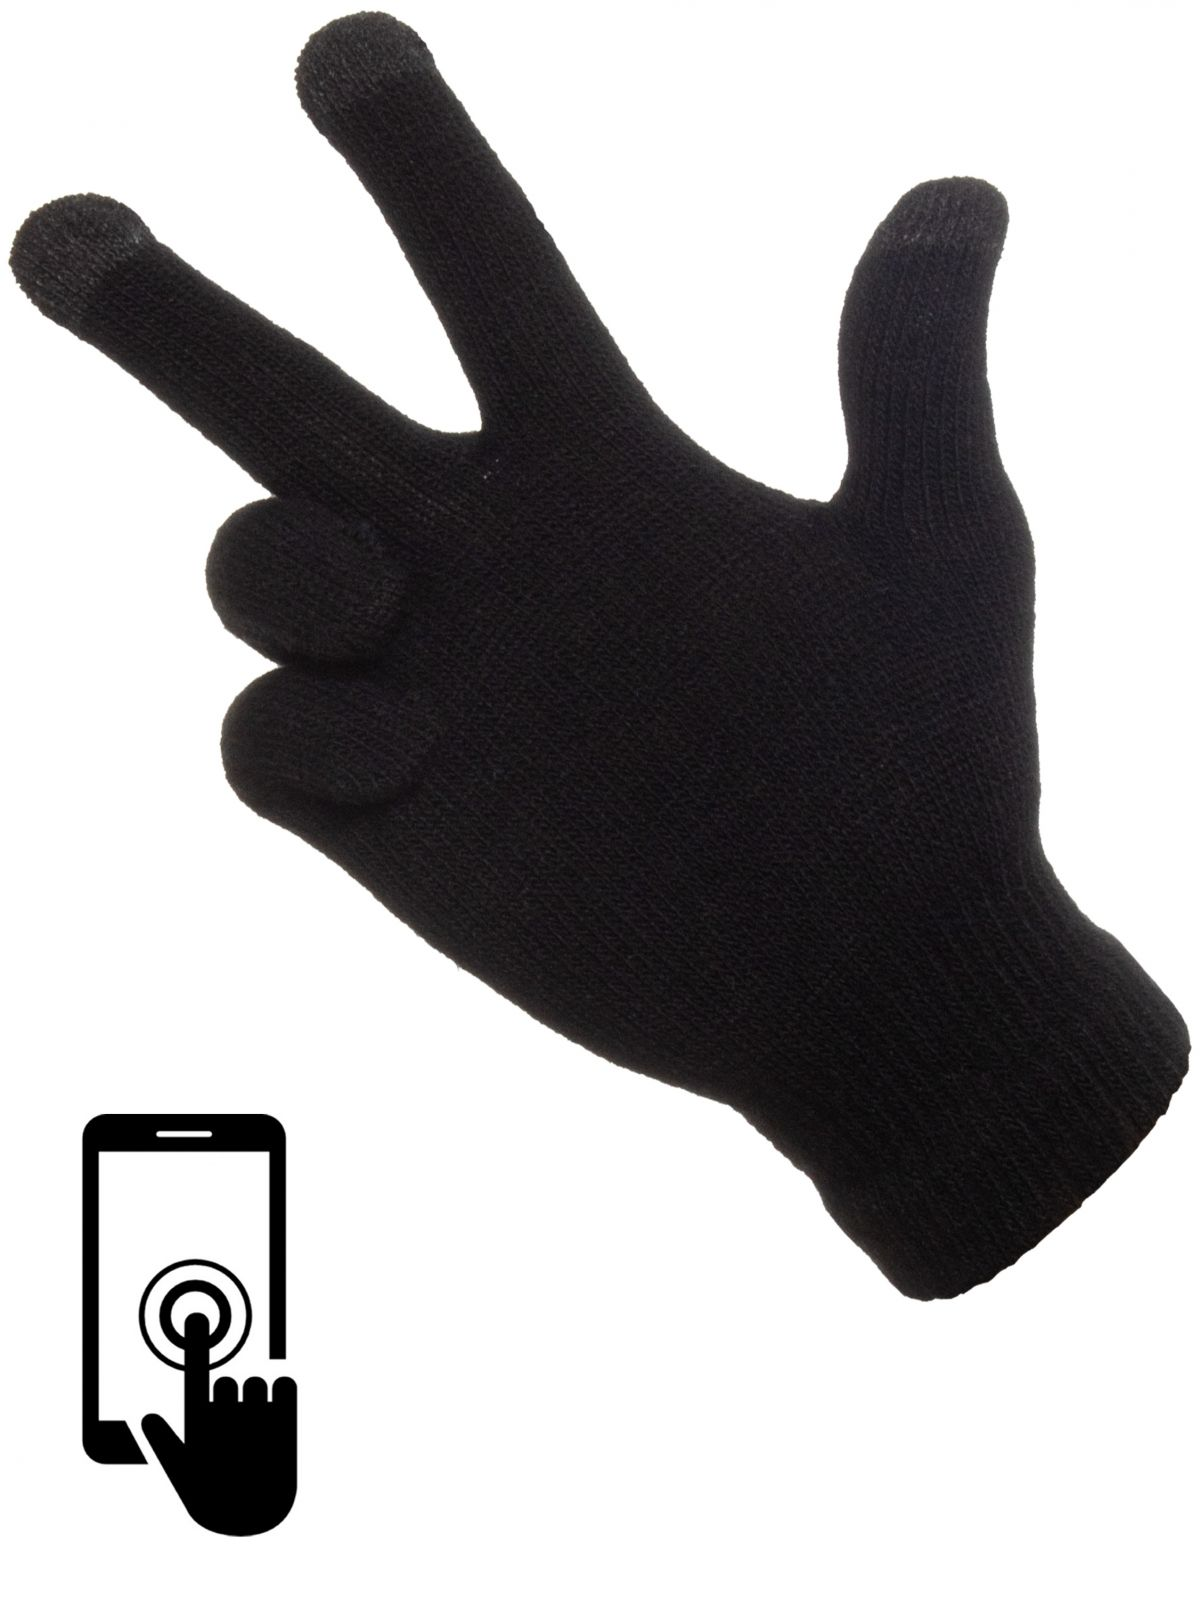 Accessories | Unisex Touch Screen Warm Stretch Knit Gloves